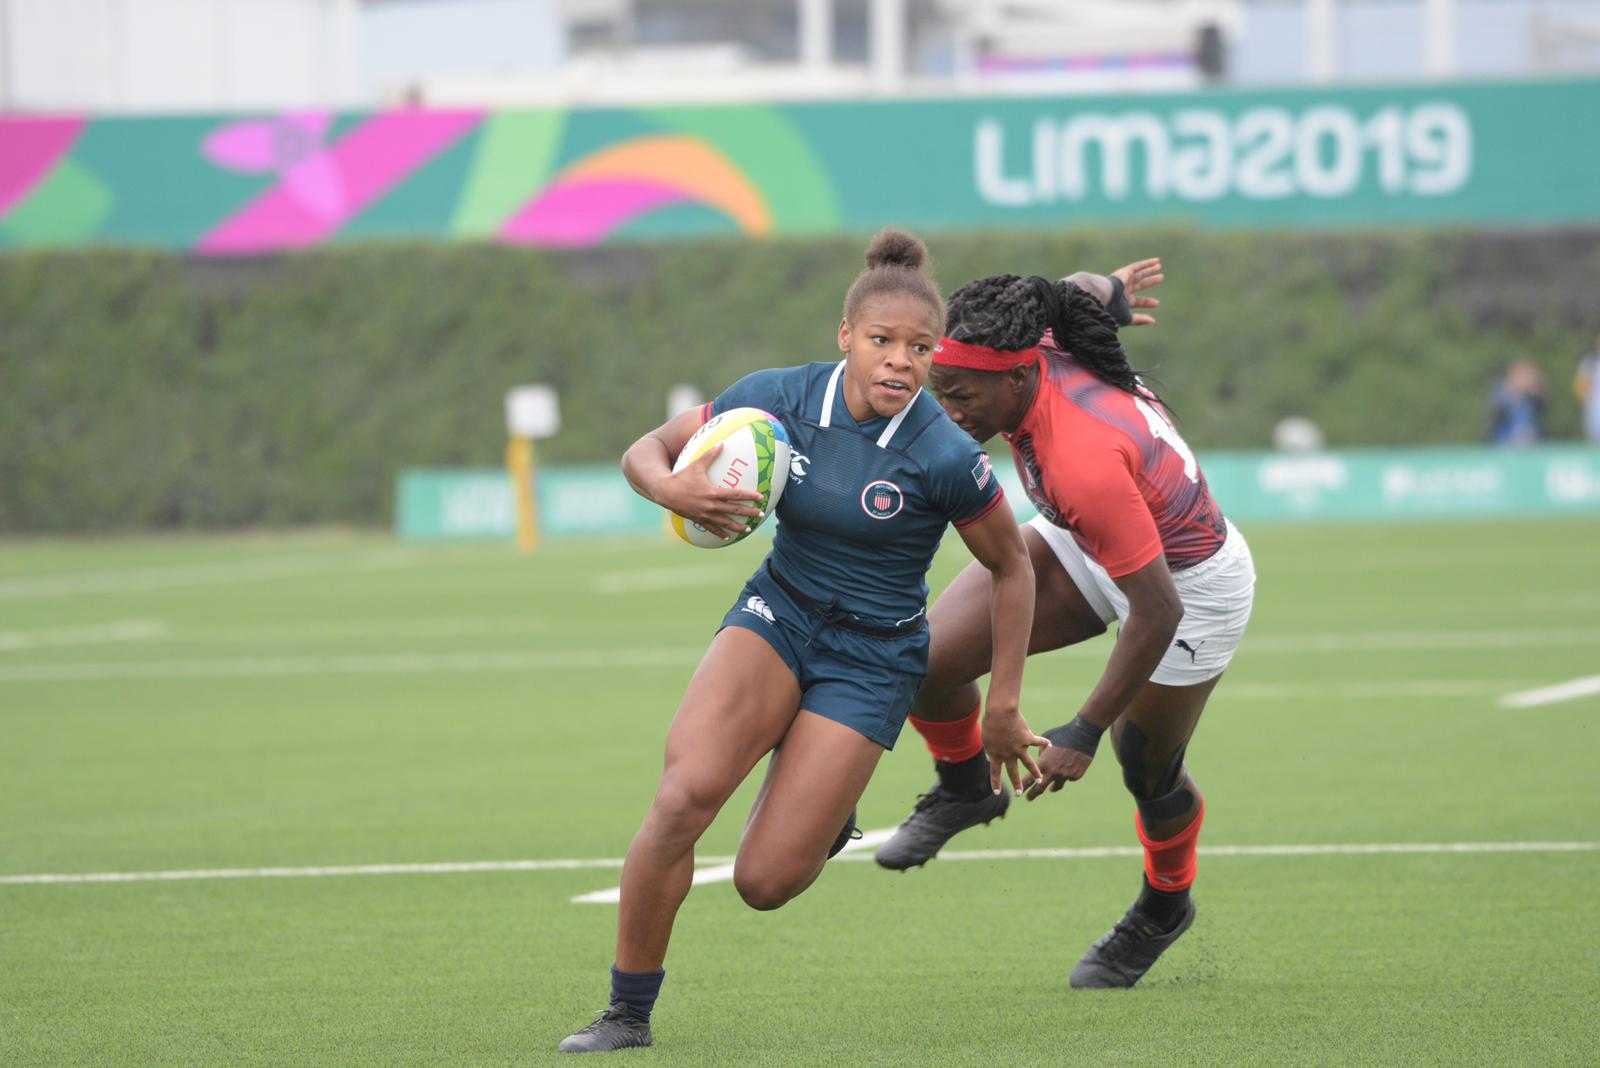 Women's Pan American Games 2019: Day One Recap